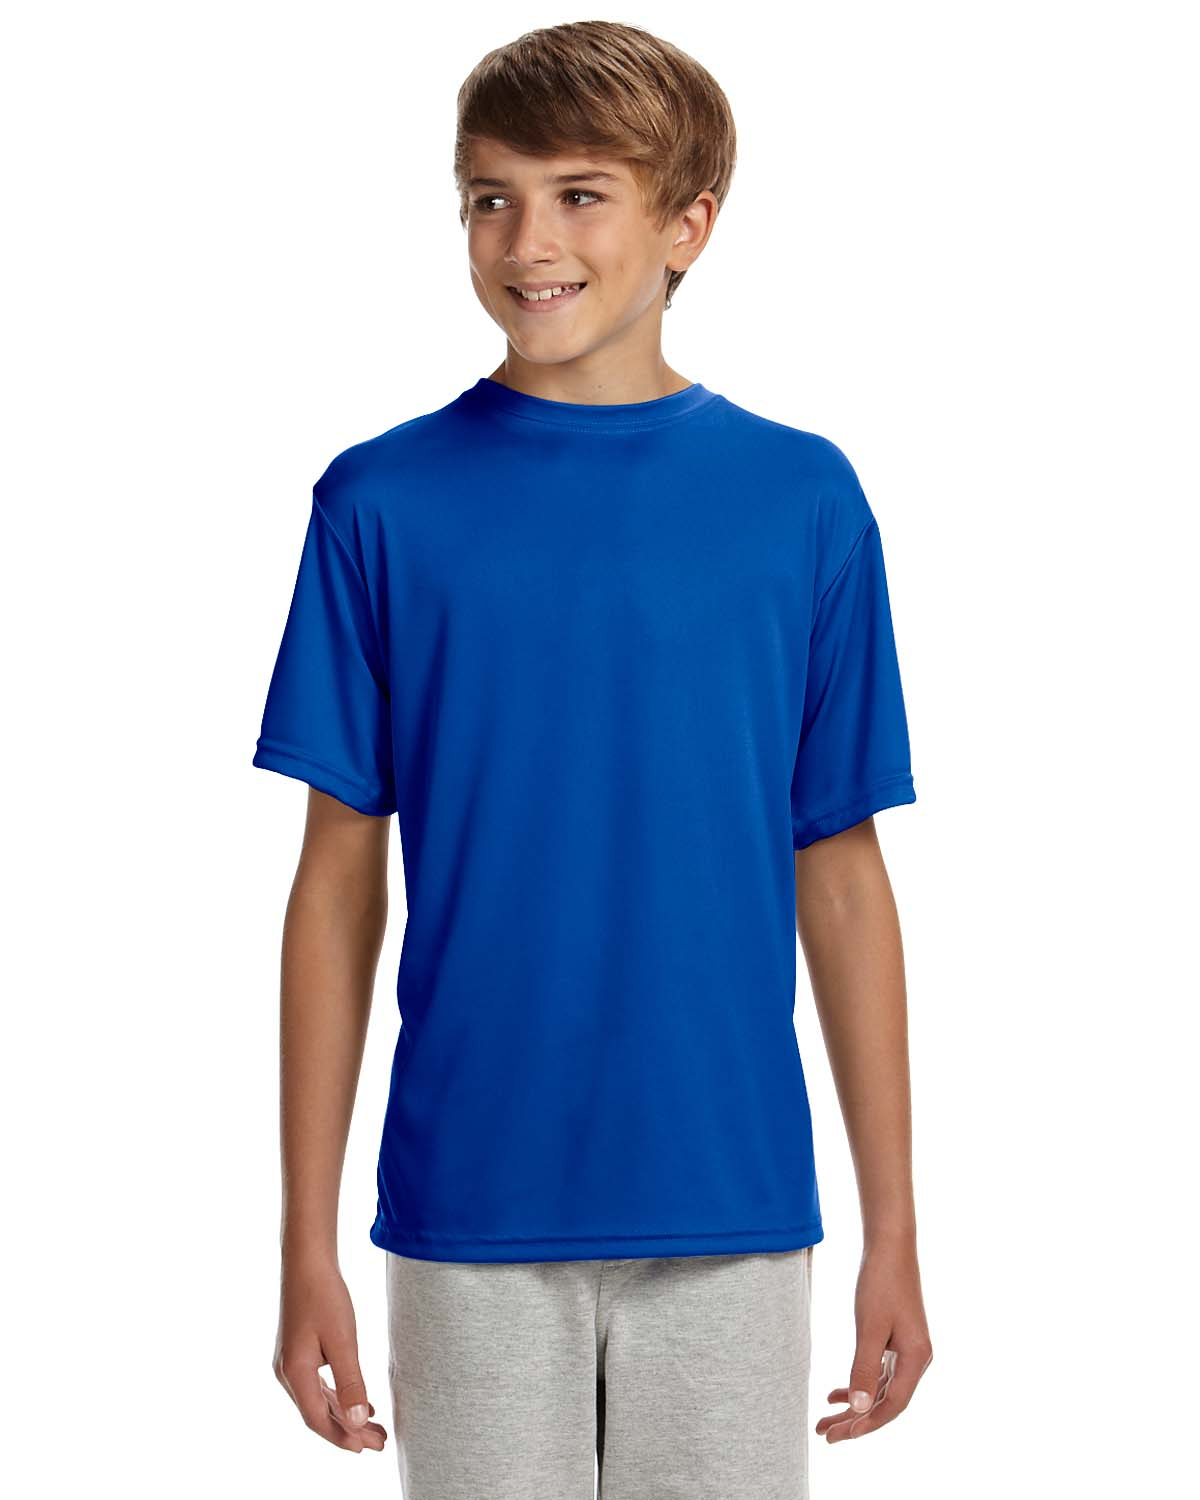 A4 Youth Short-Sleeve Cooling Performance Crew